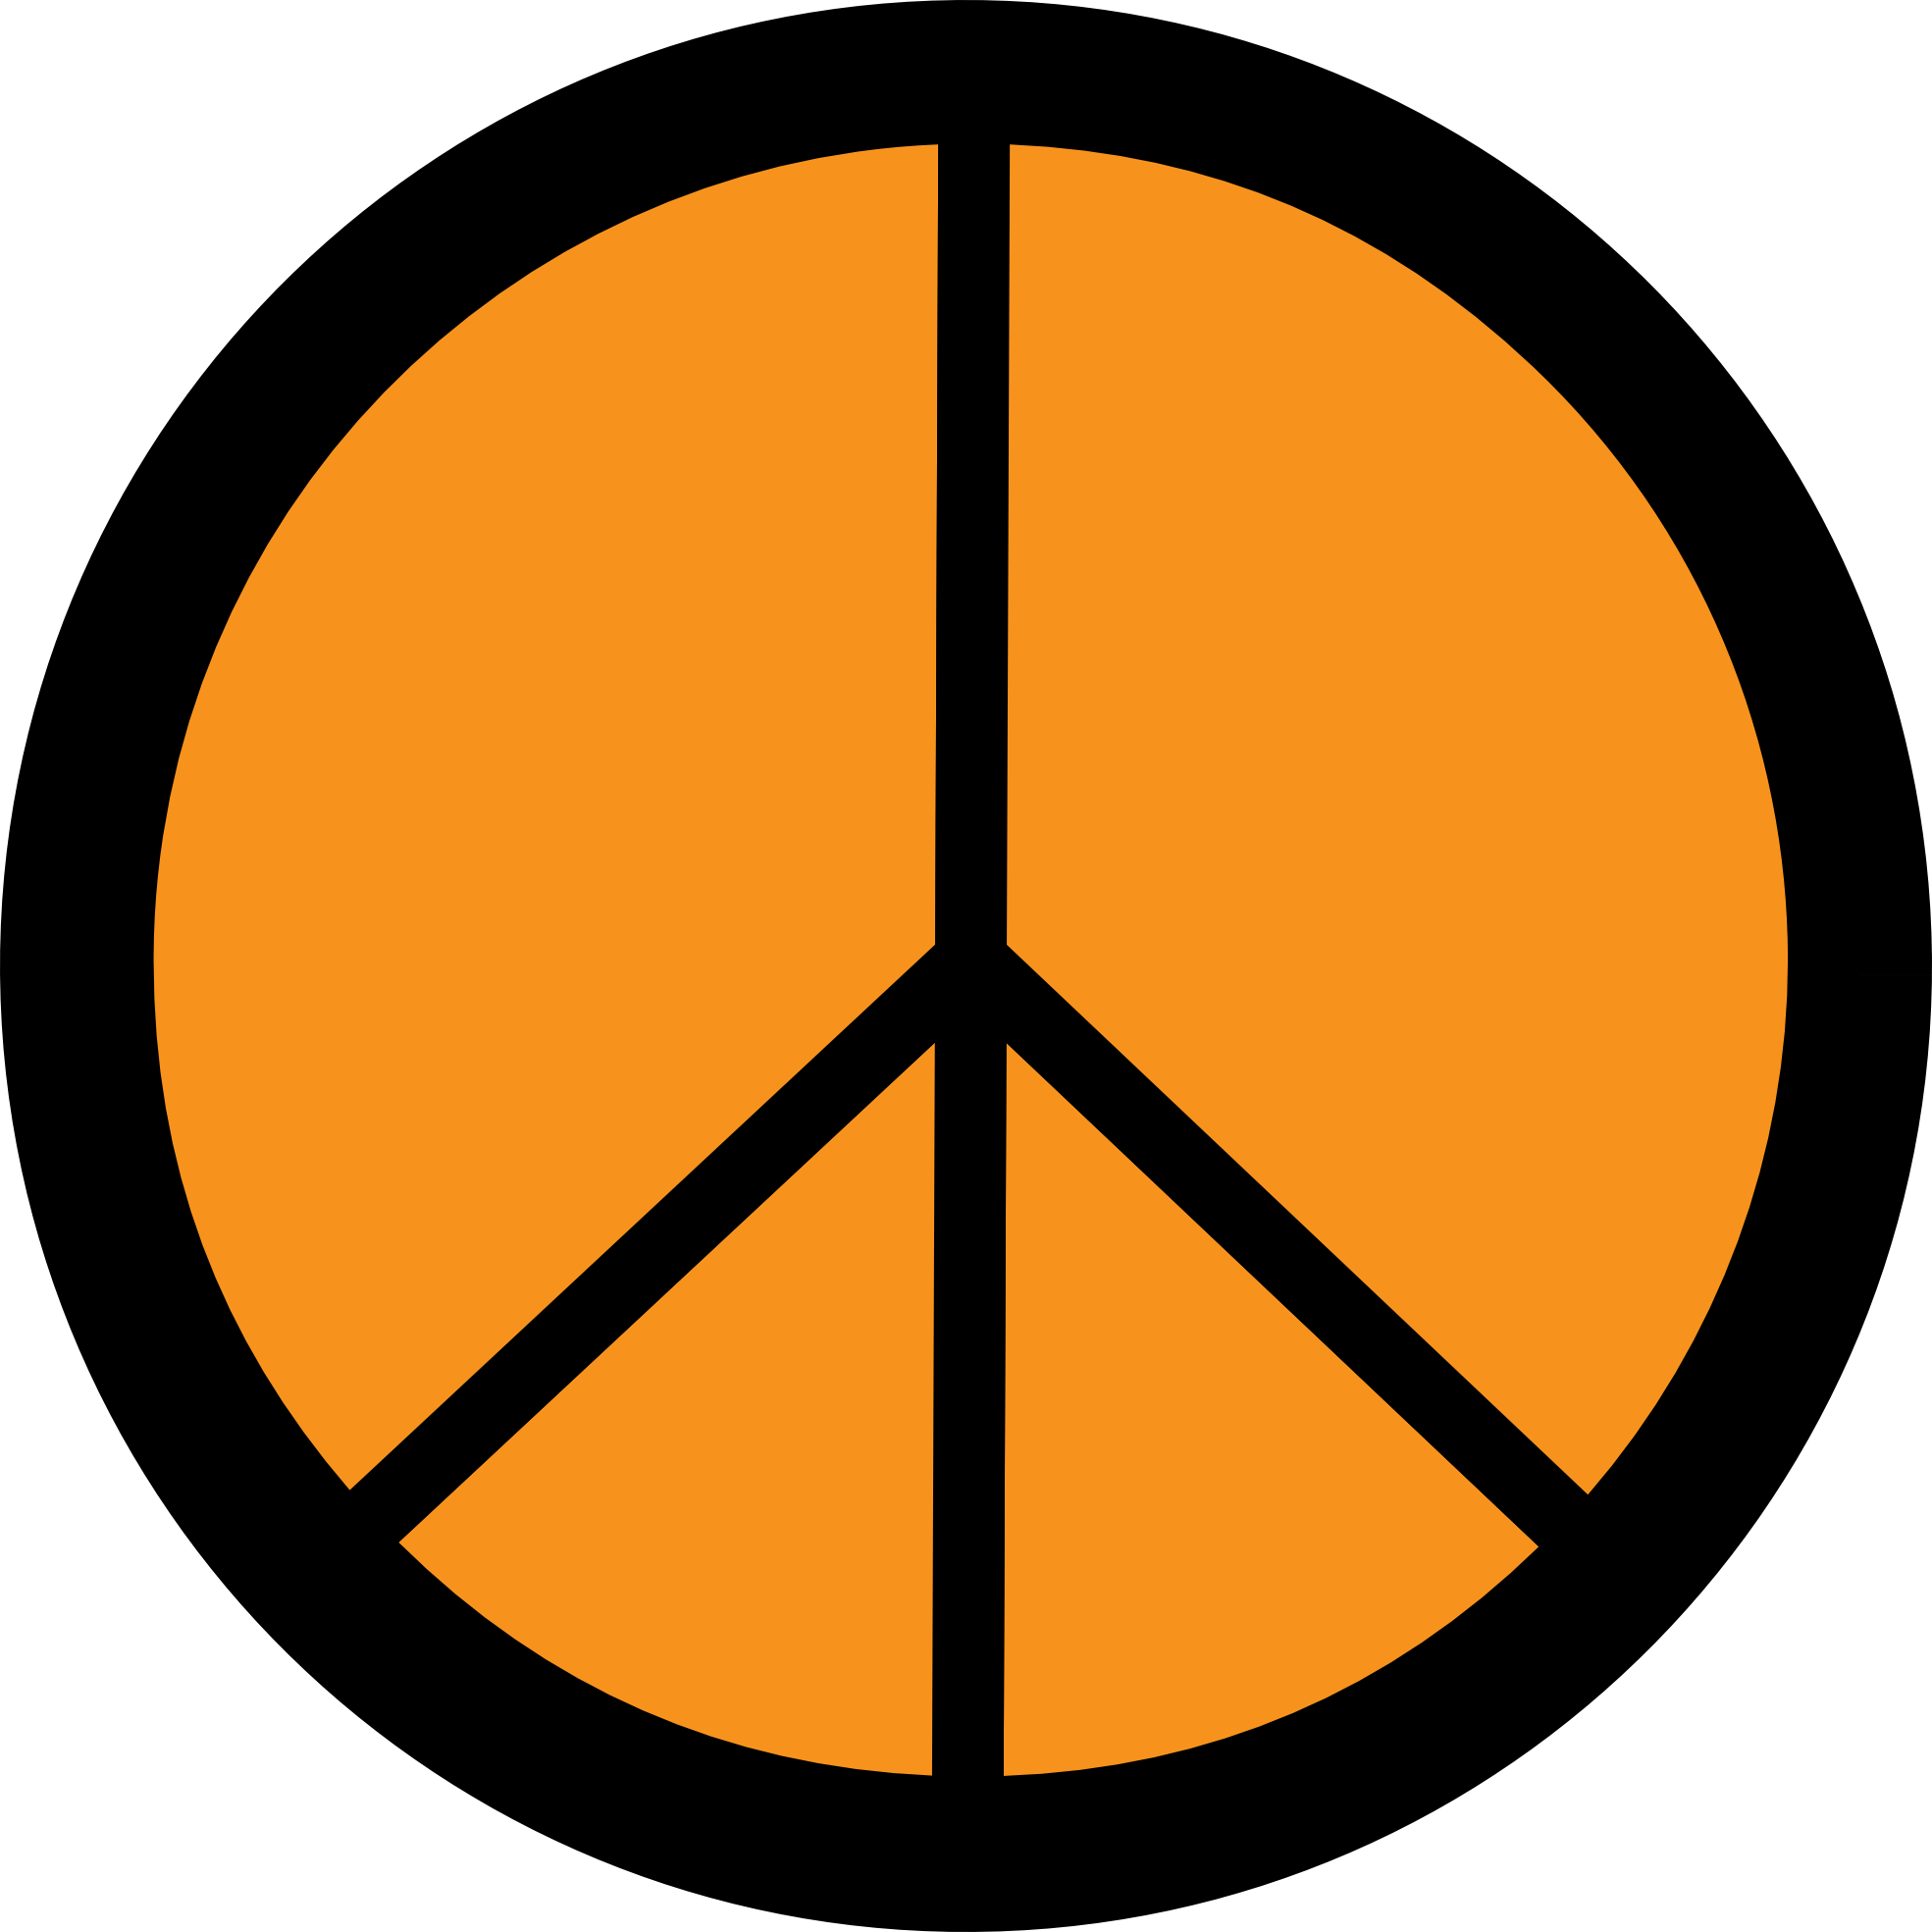 Peace clipart. Sign image free clip